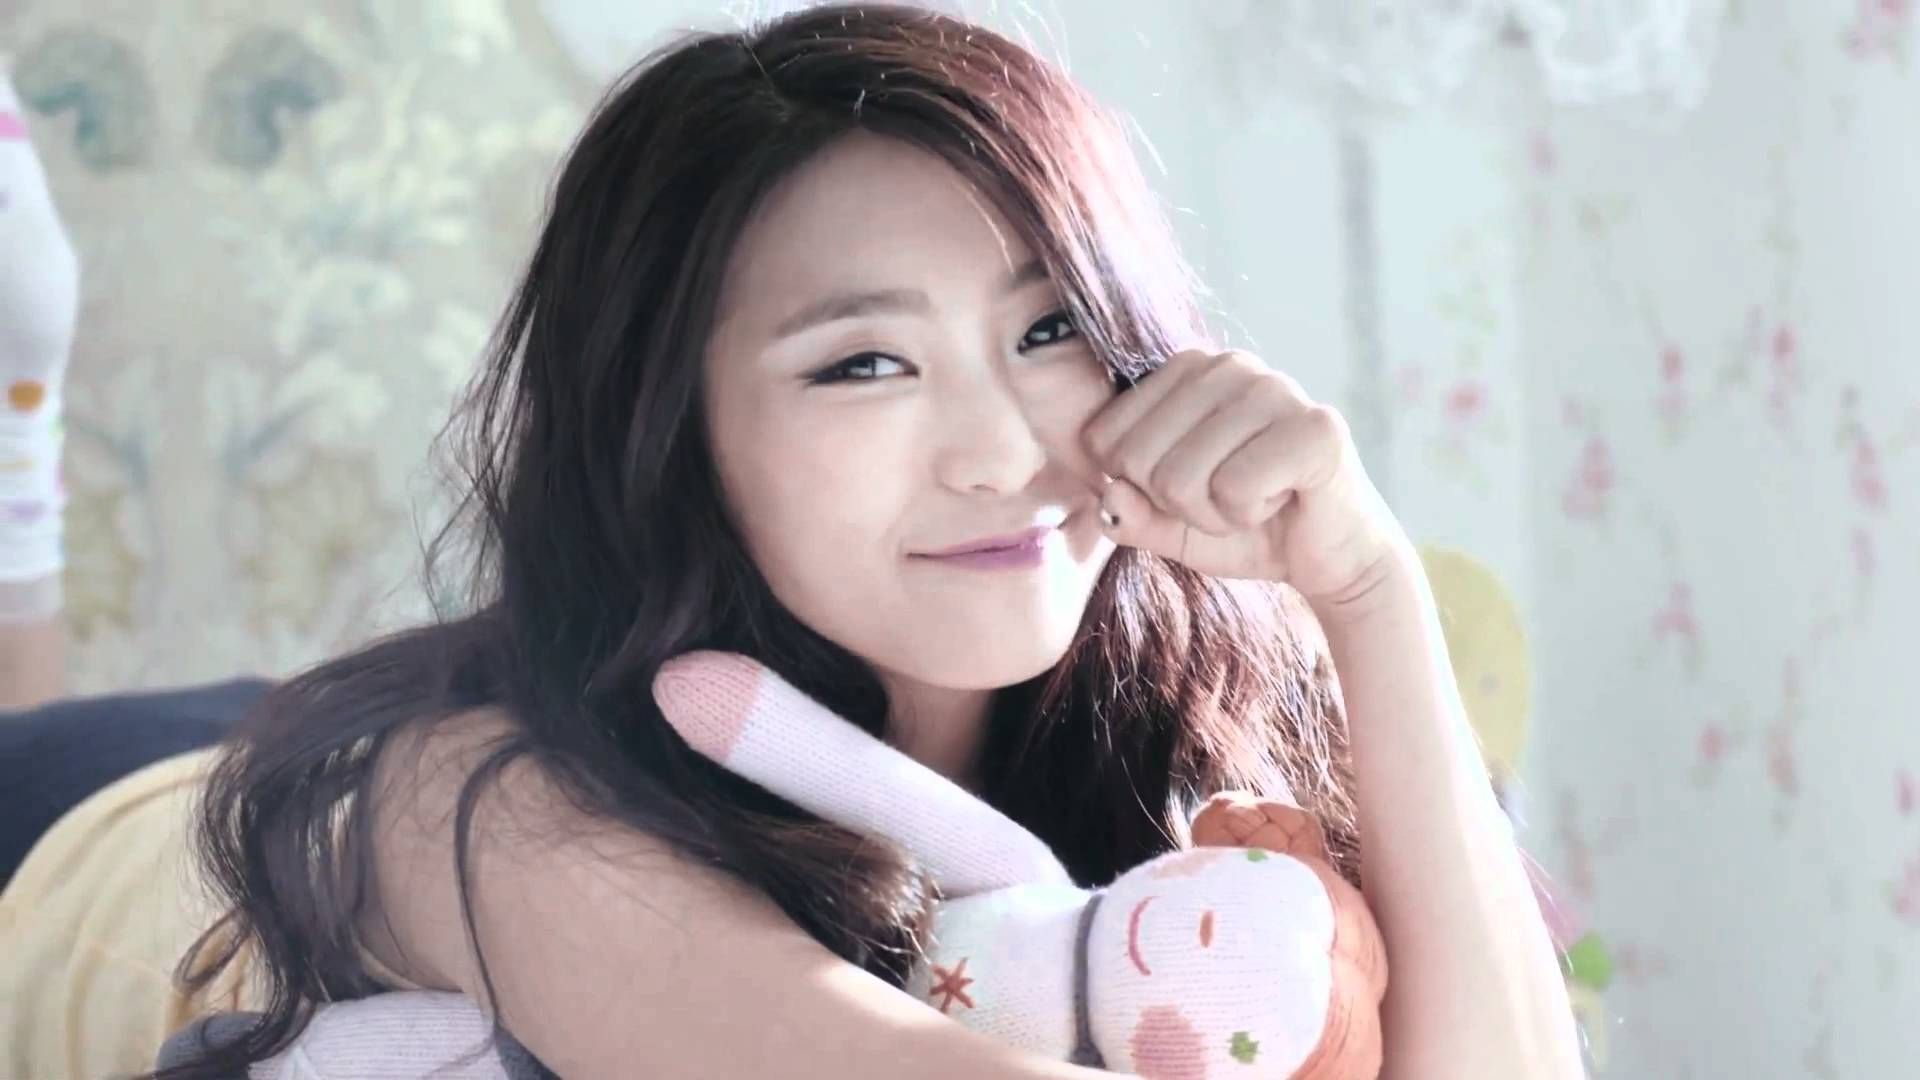 sistar bora dating rumor Posts about dating written by rawr6127 check out my tumblr @ rawr6127tumblrcom.